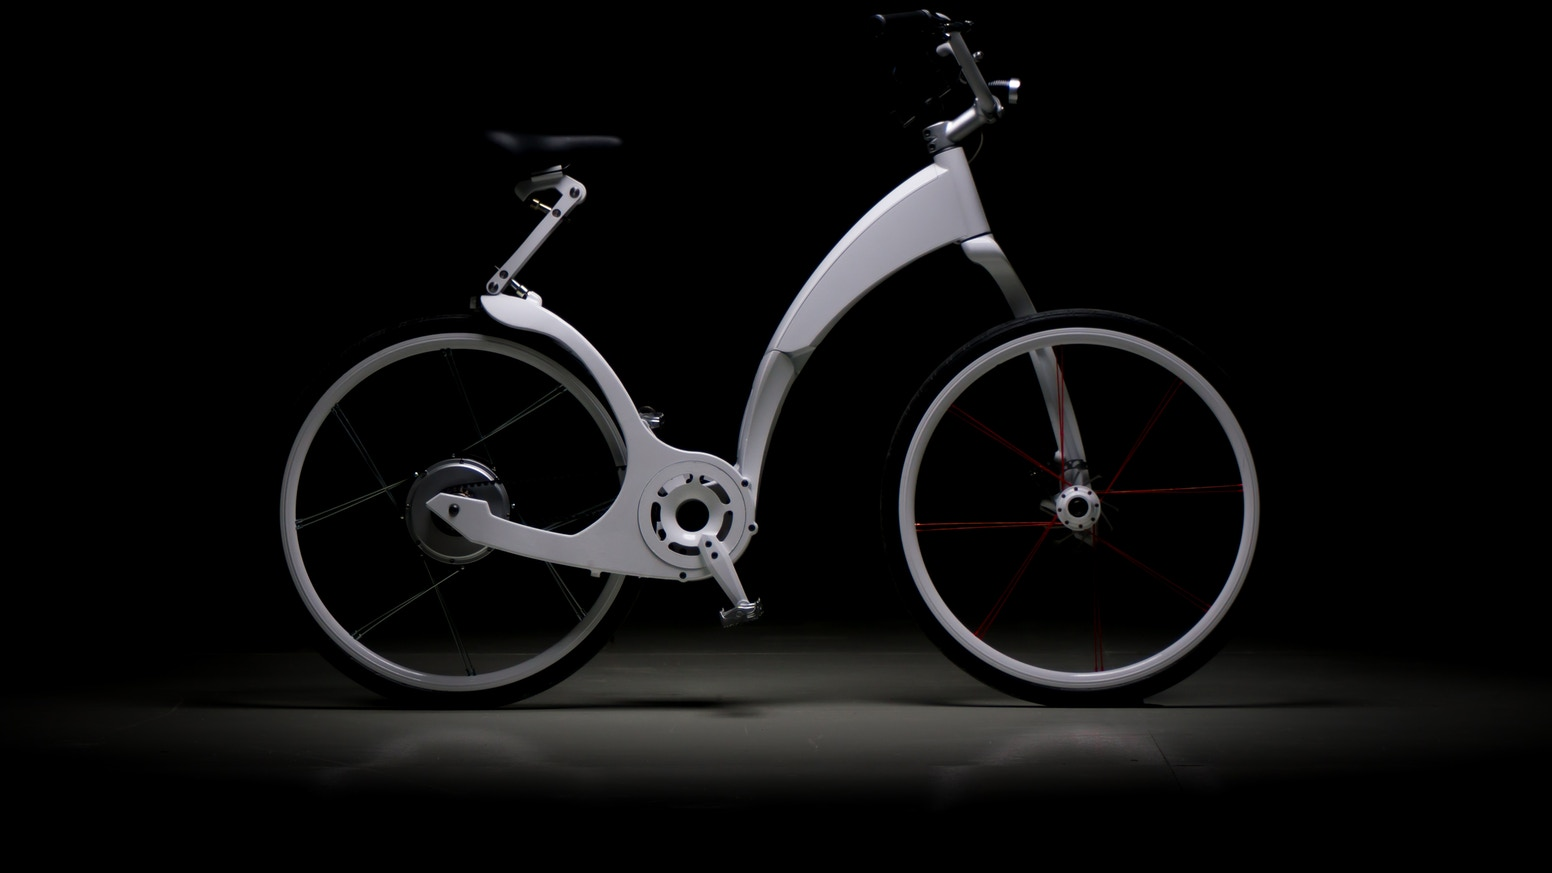 Gi Flybike The First Electric Bike That Folds In One Second By